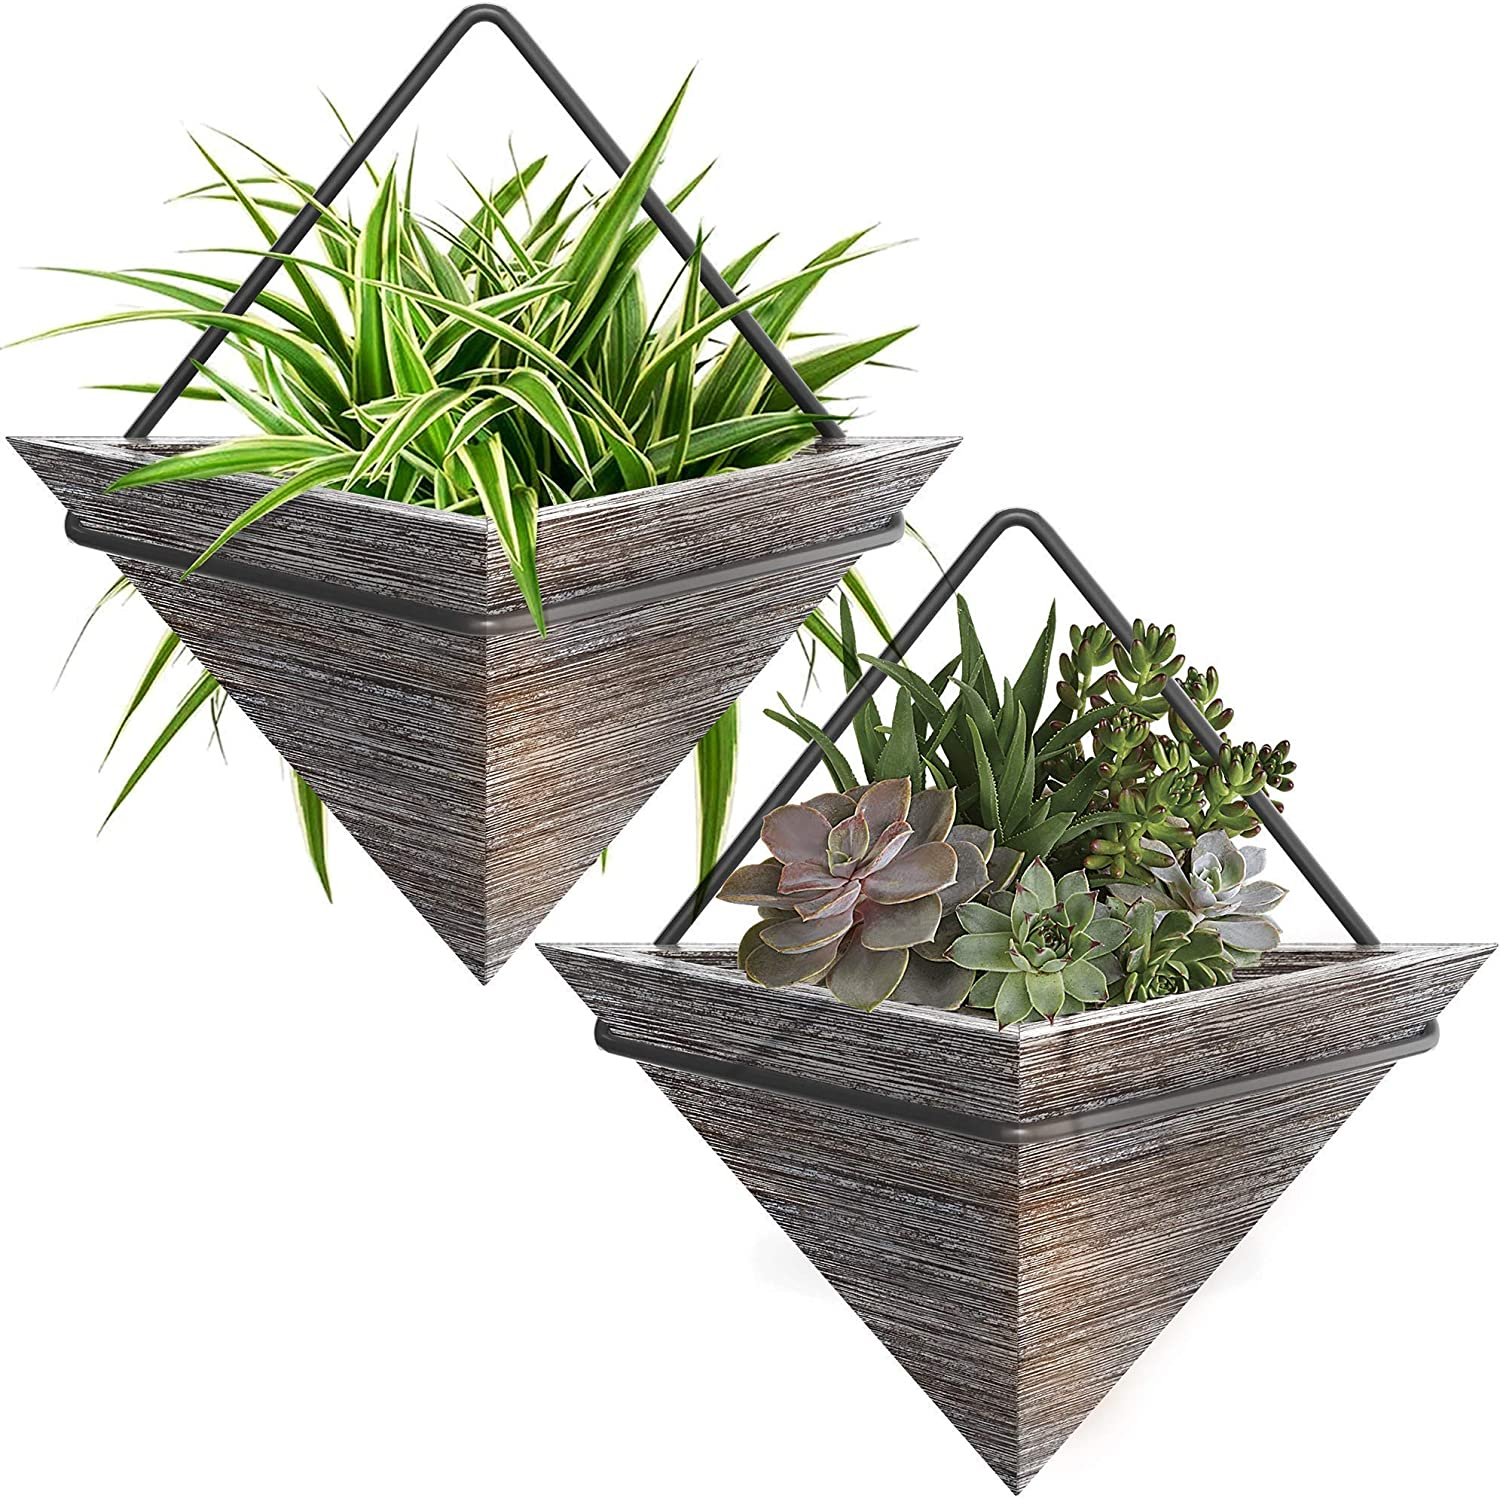 Wall Hanging Small 2 Planters for Succulent & Small Plants - Modern Indoor Hanging Triangle 2 Plant Holders in Rustic Wood - Wall Planters Décor for Home - Small Wall Mount Pots (2 Pack Rustic Grey)